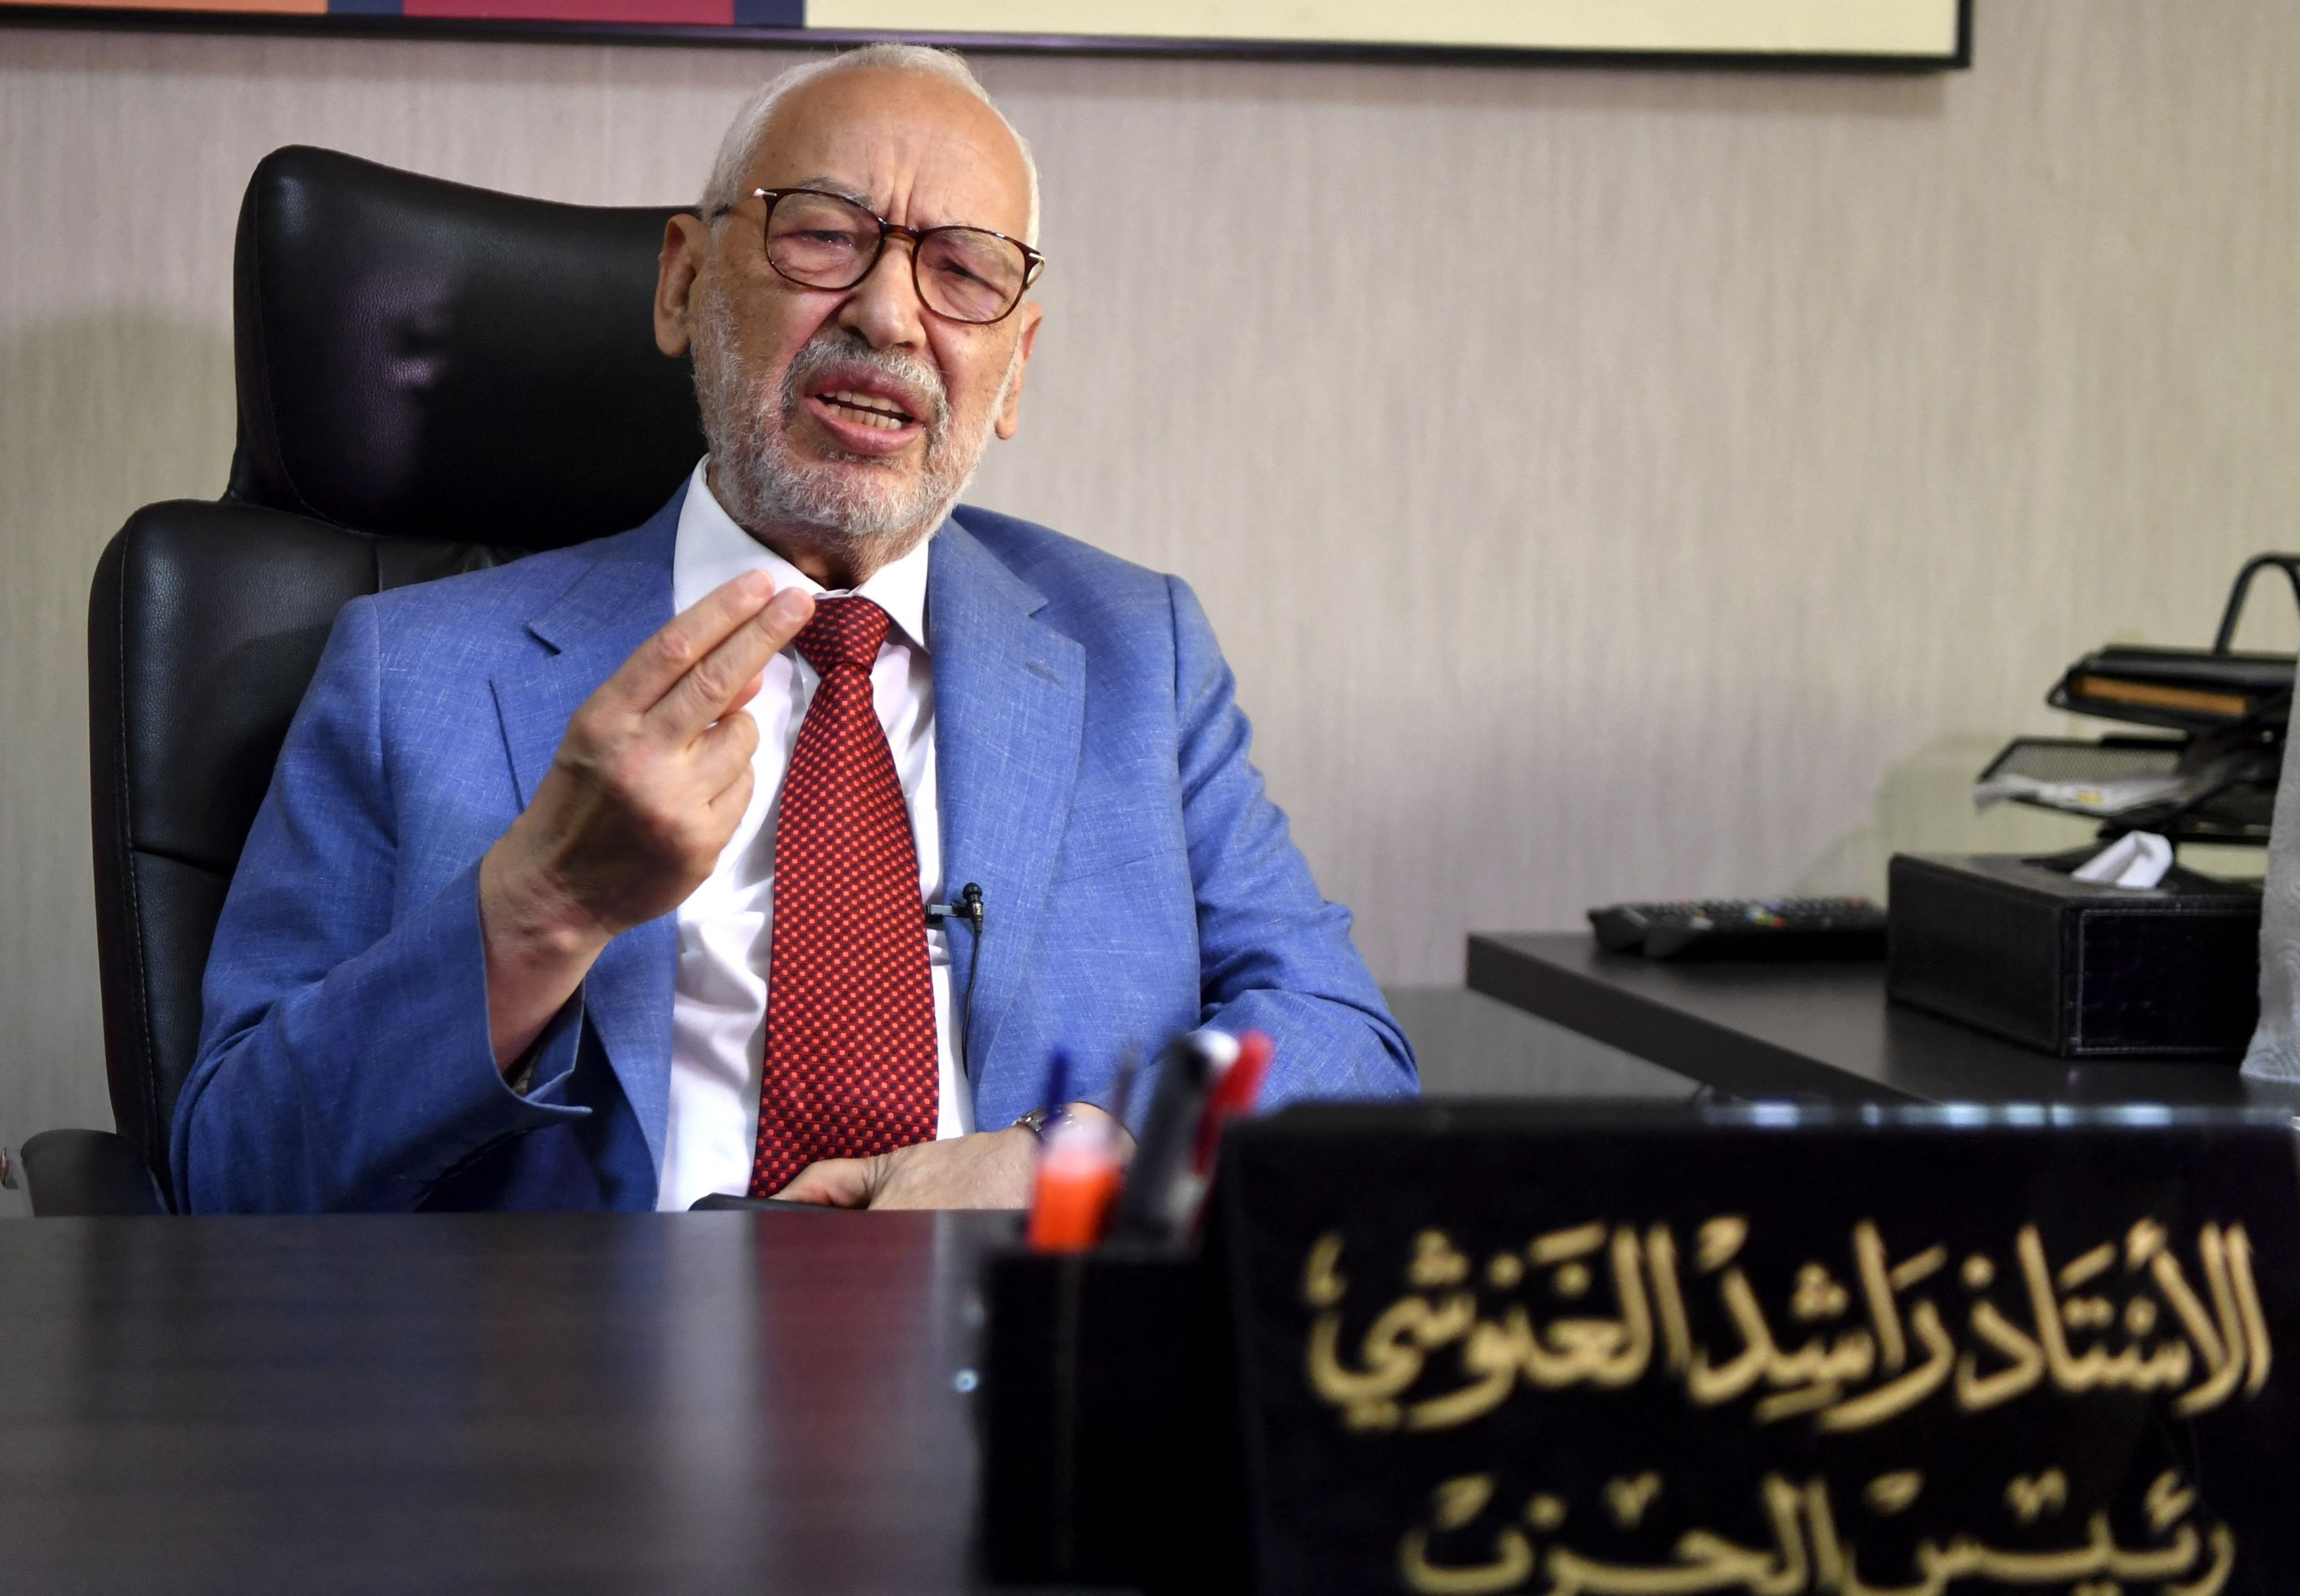 Tunisia's parliament speaker and Ennahdha party leader Rached Ghannouchi gives an interview with AFP at his office in the capital Tunis, Tunisia on July 29, 2021. (AFP Photo)